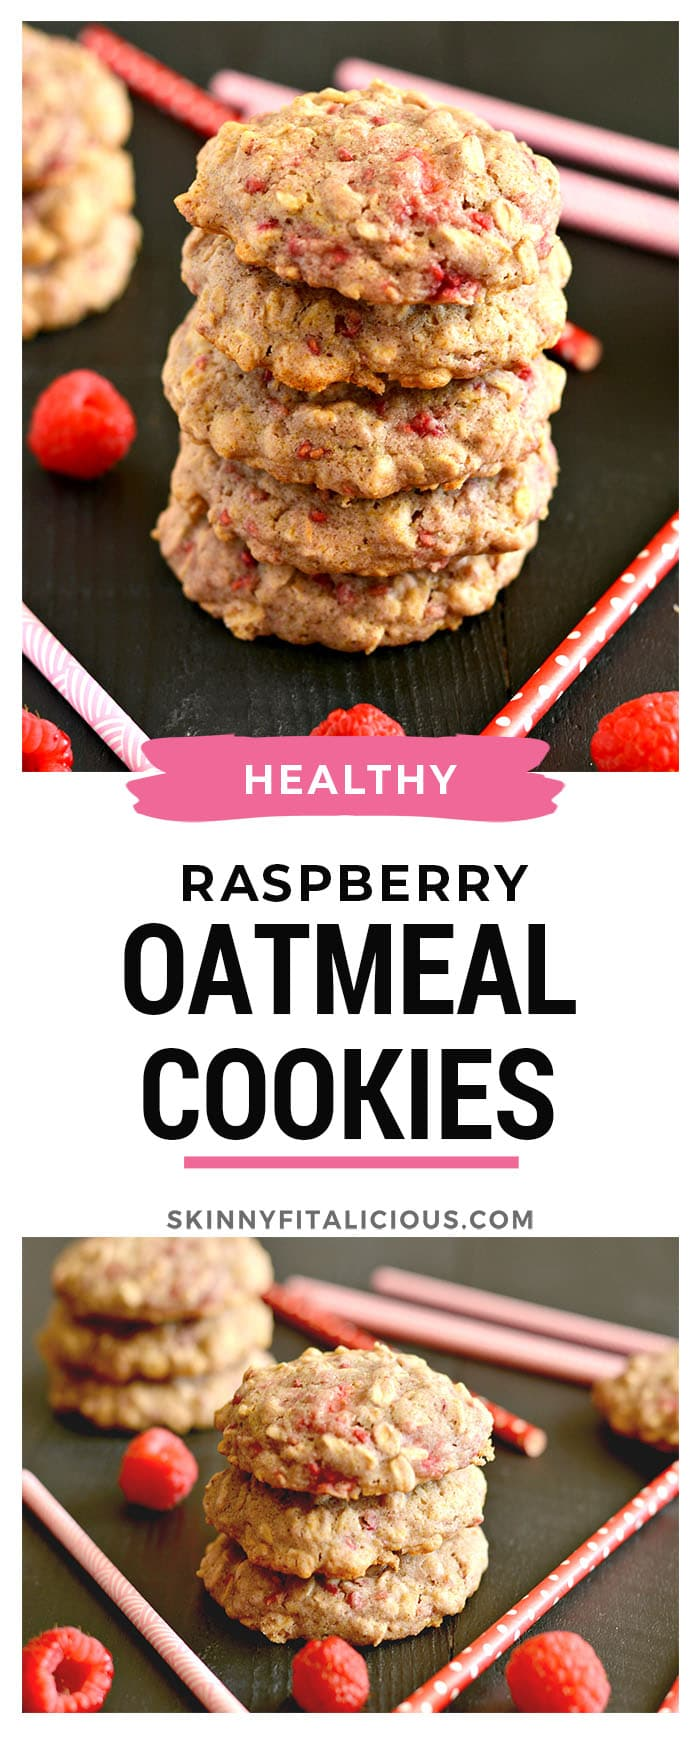 These soft and chewy Healthy Raspberry Oatmeal Cookies are loaded with whole grains and dancing with raspberries. With no refined sugar, these charming goodies make an irresistible treat! Gluten Free + Low Calorie